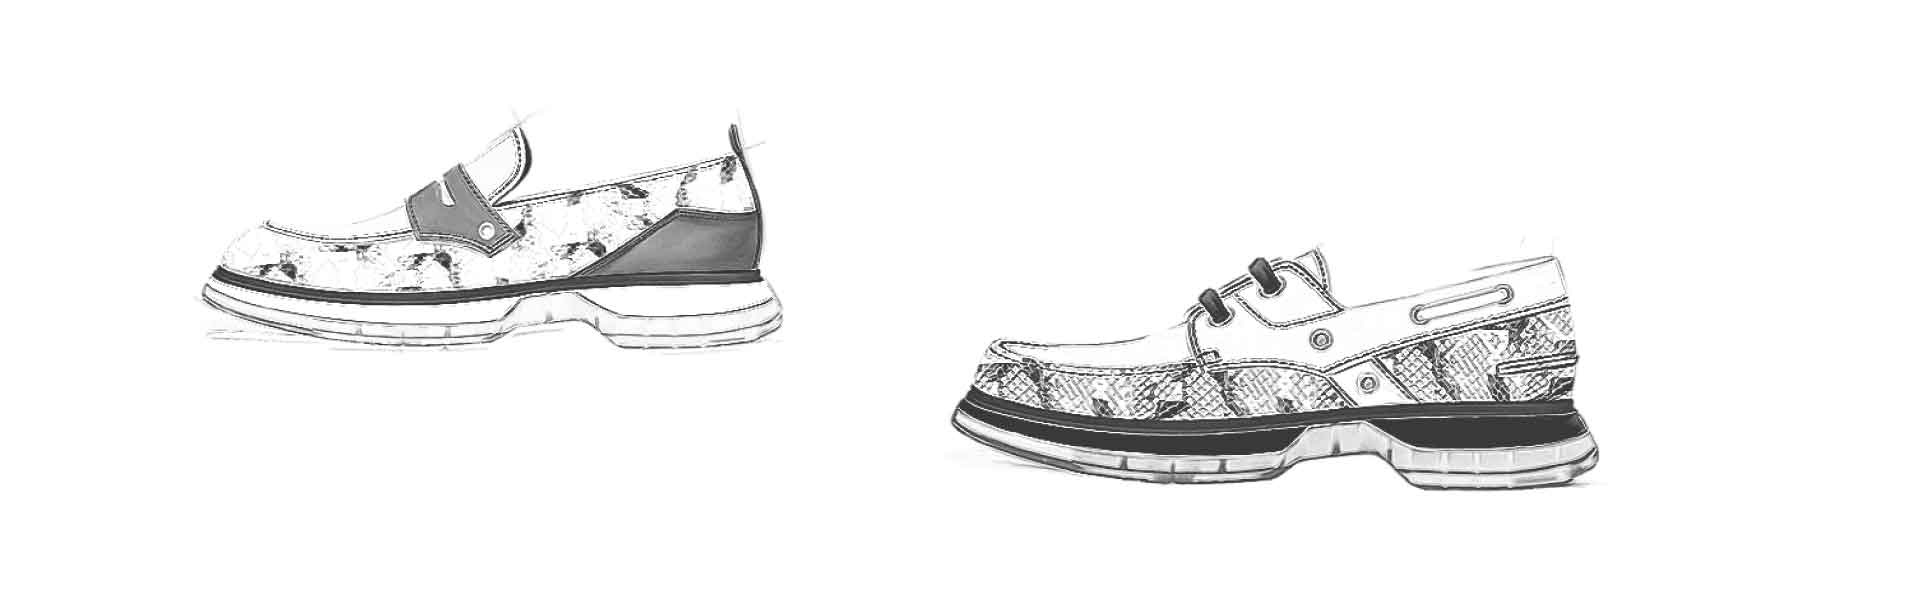 Footwear Trend SS21 - Colorful Snake - Sketch